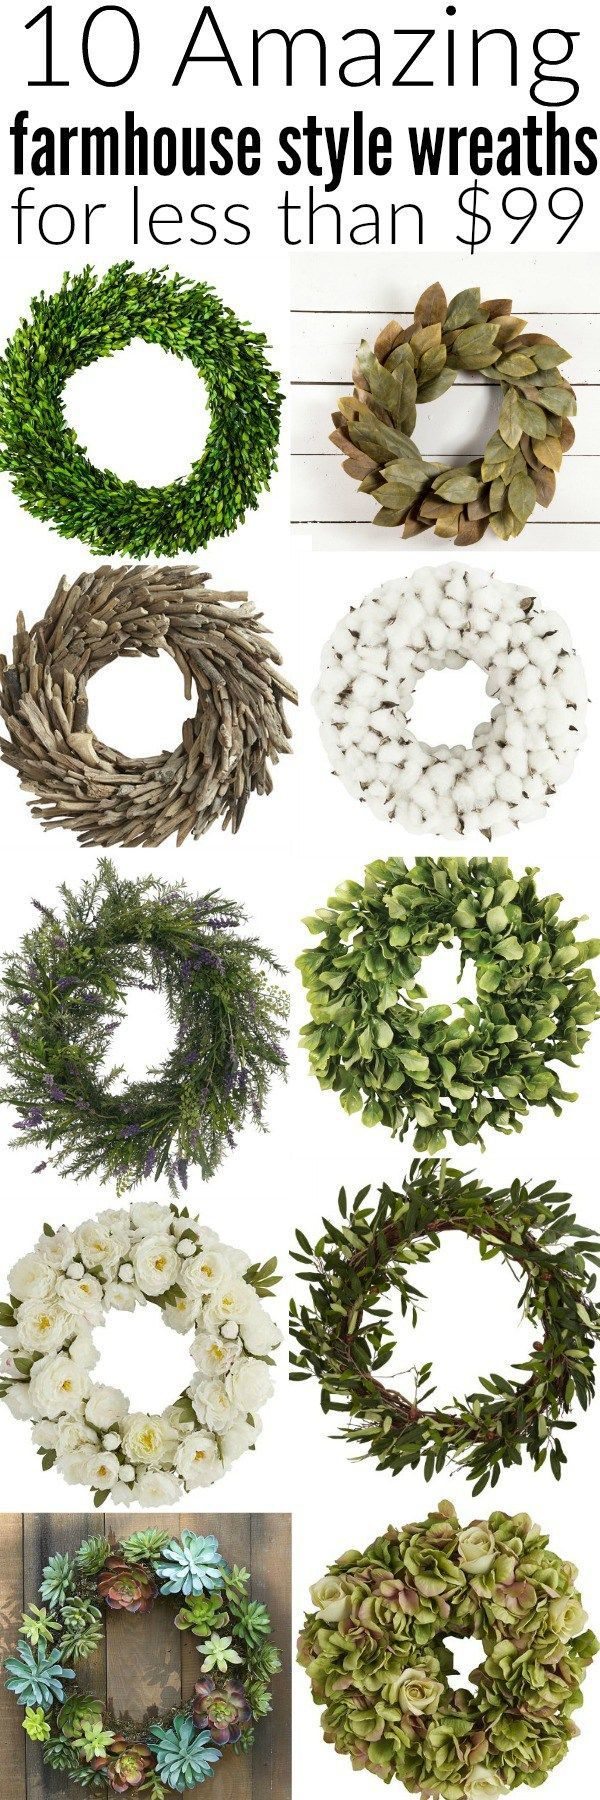 The best farmhouse style wreaths! A must pin if you are shopping for wreaths! They are great for indoors, outdoors, doors, centerpieces, walls, & so much more!!